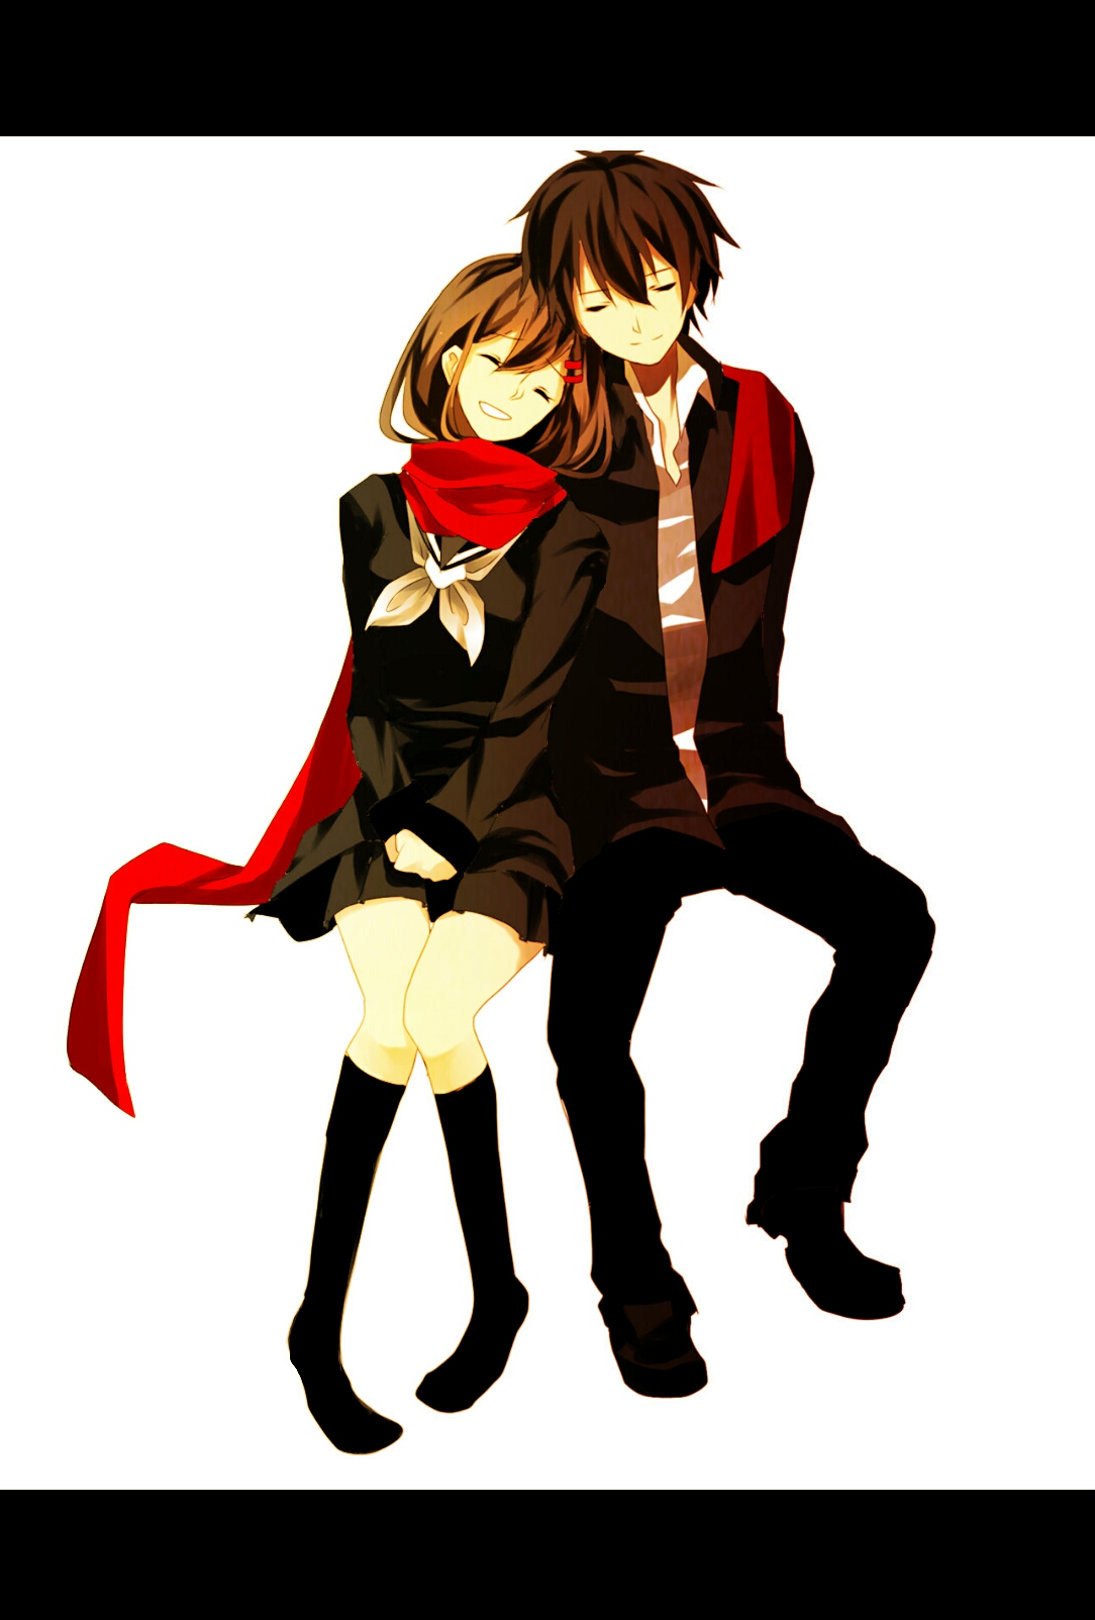 Kagerou project · download kagerou project image